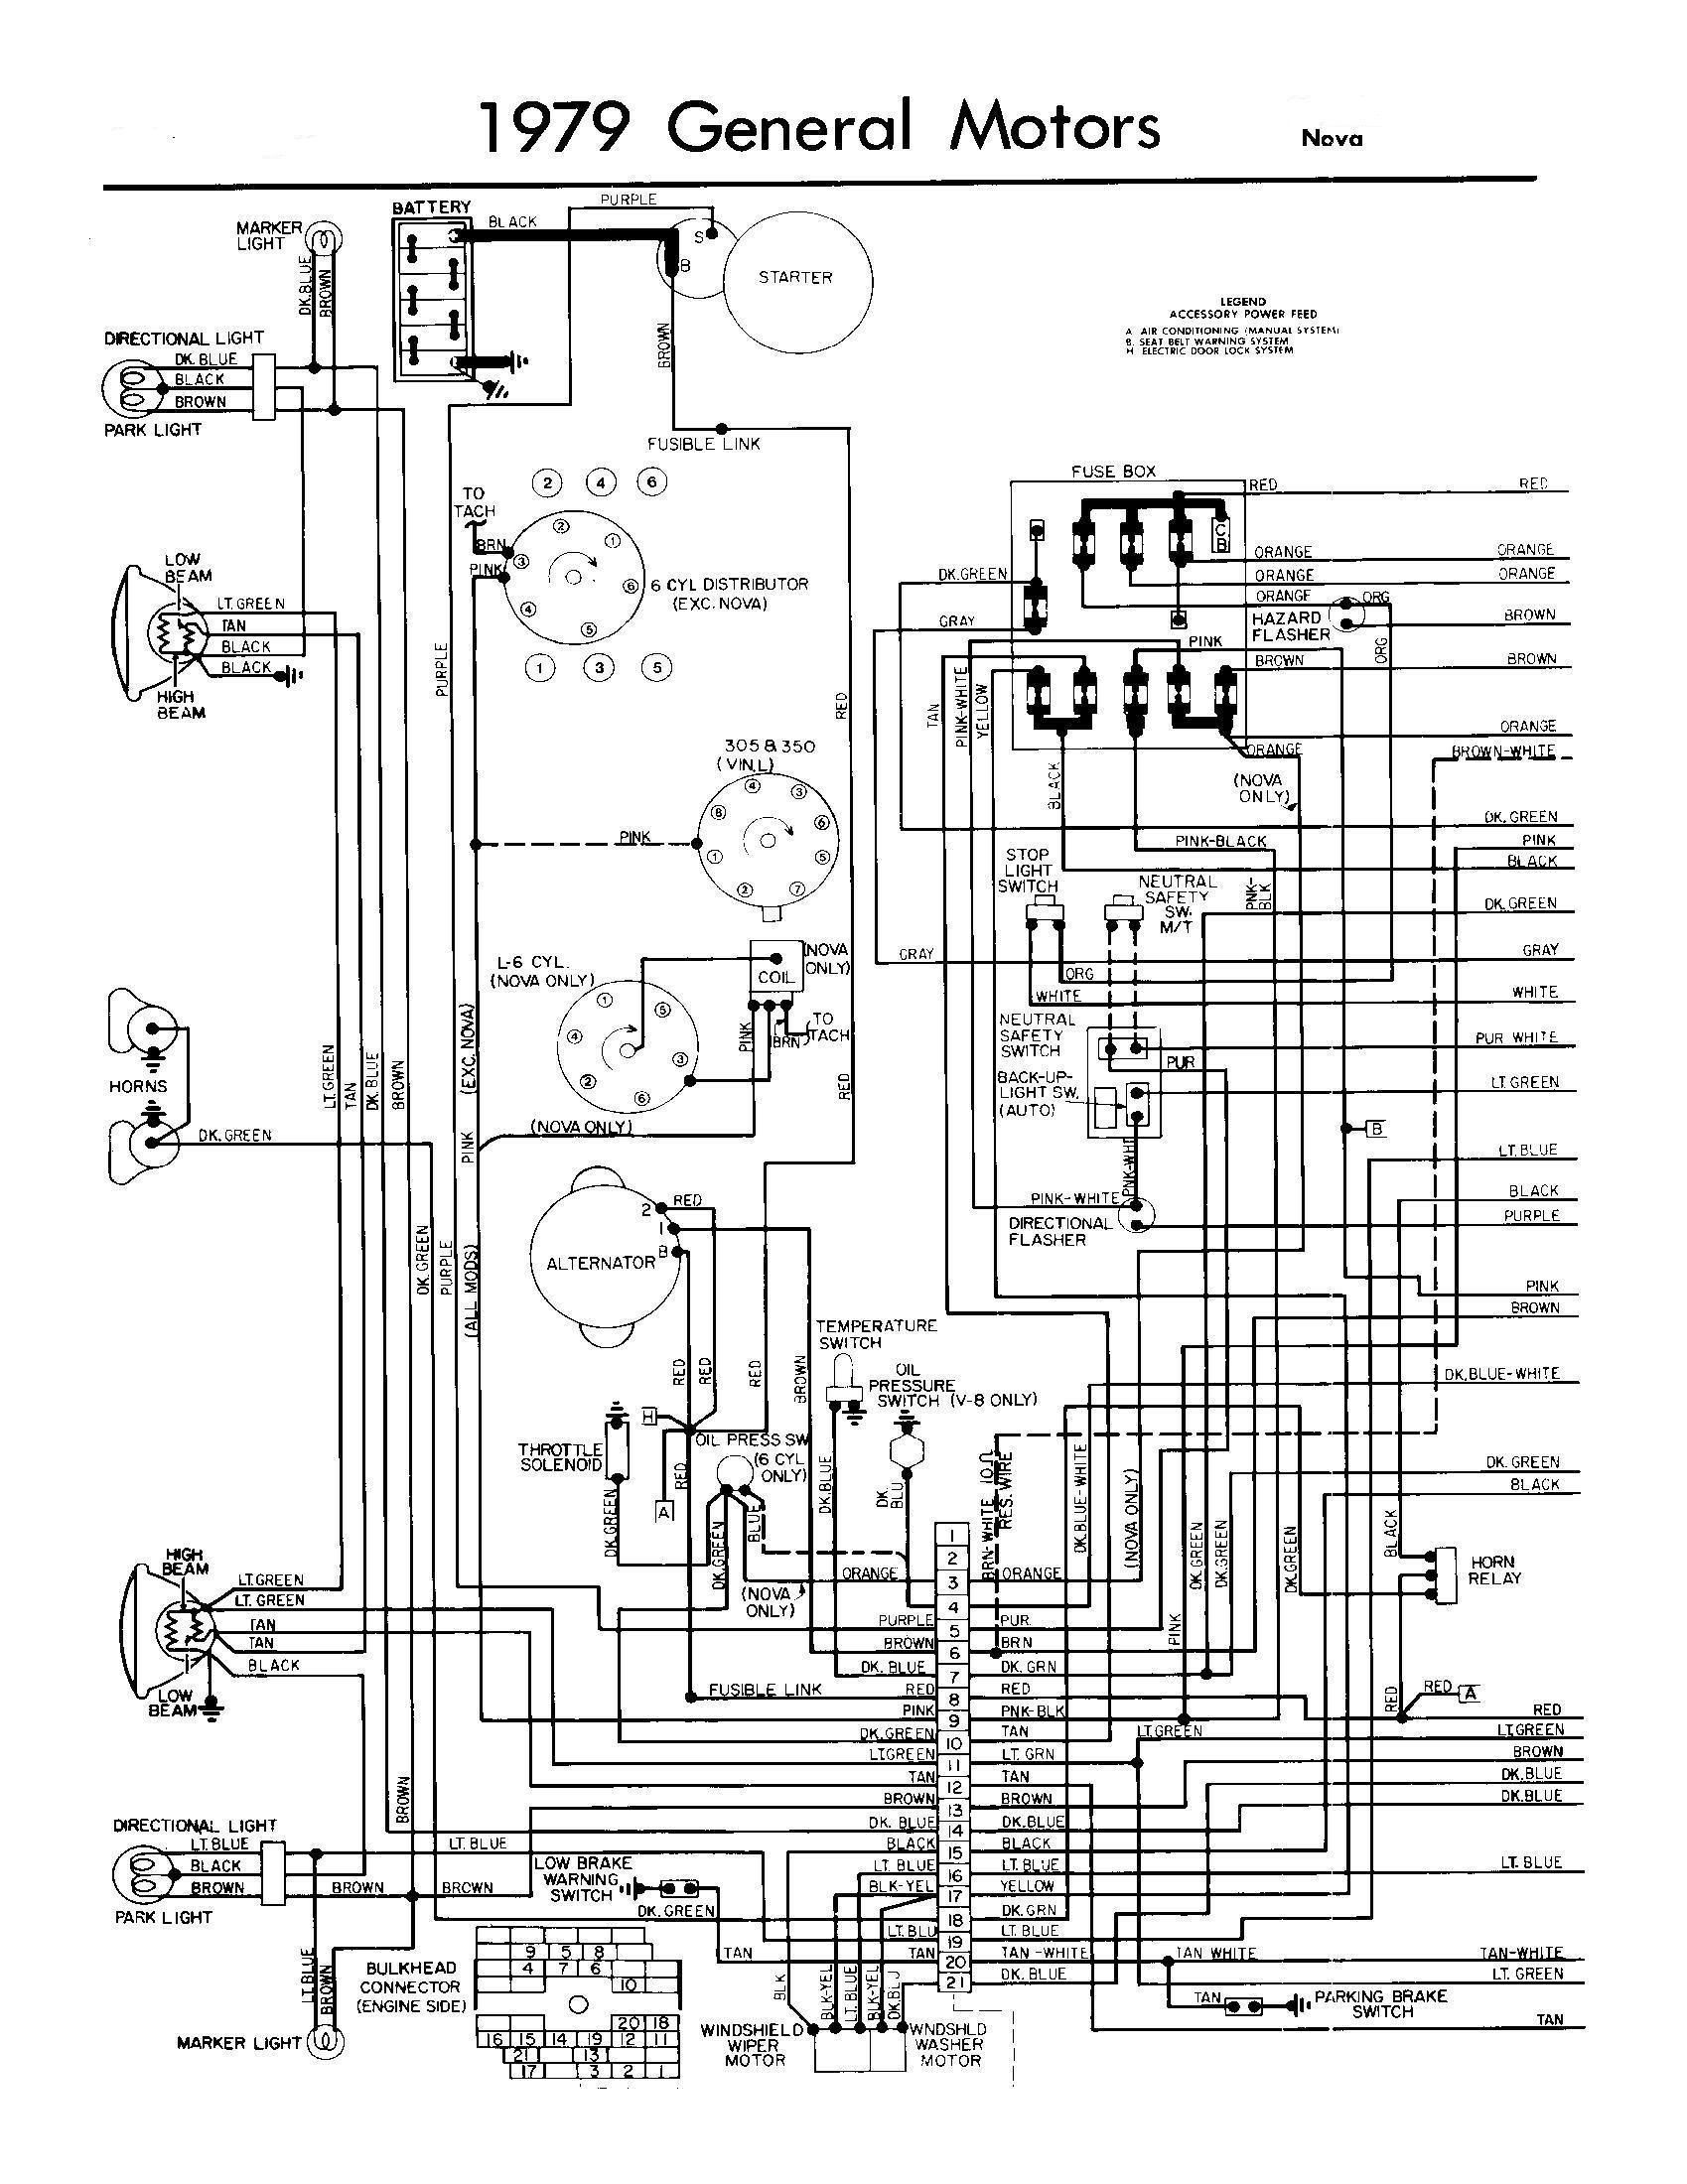 Unique Vn Alternator Wiring Diagram #diagrams #